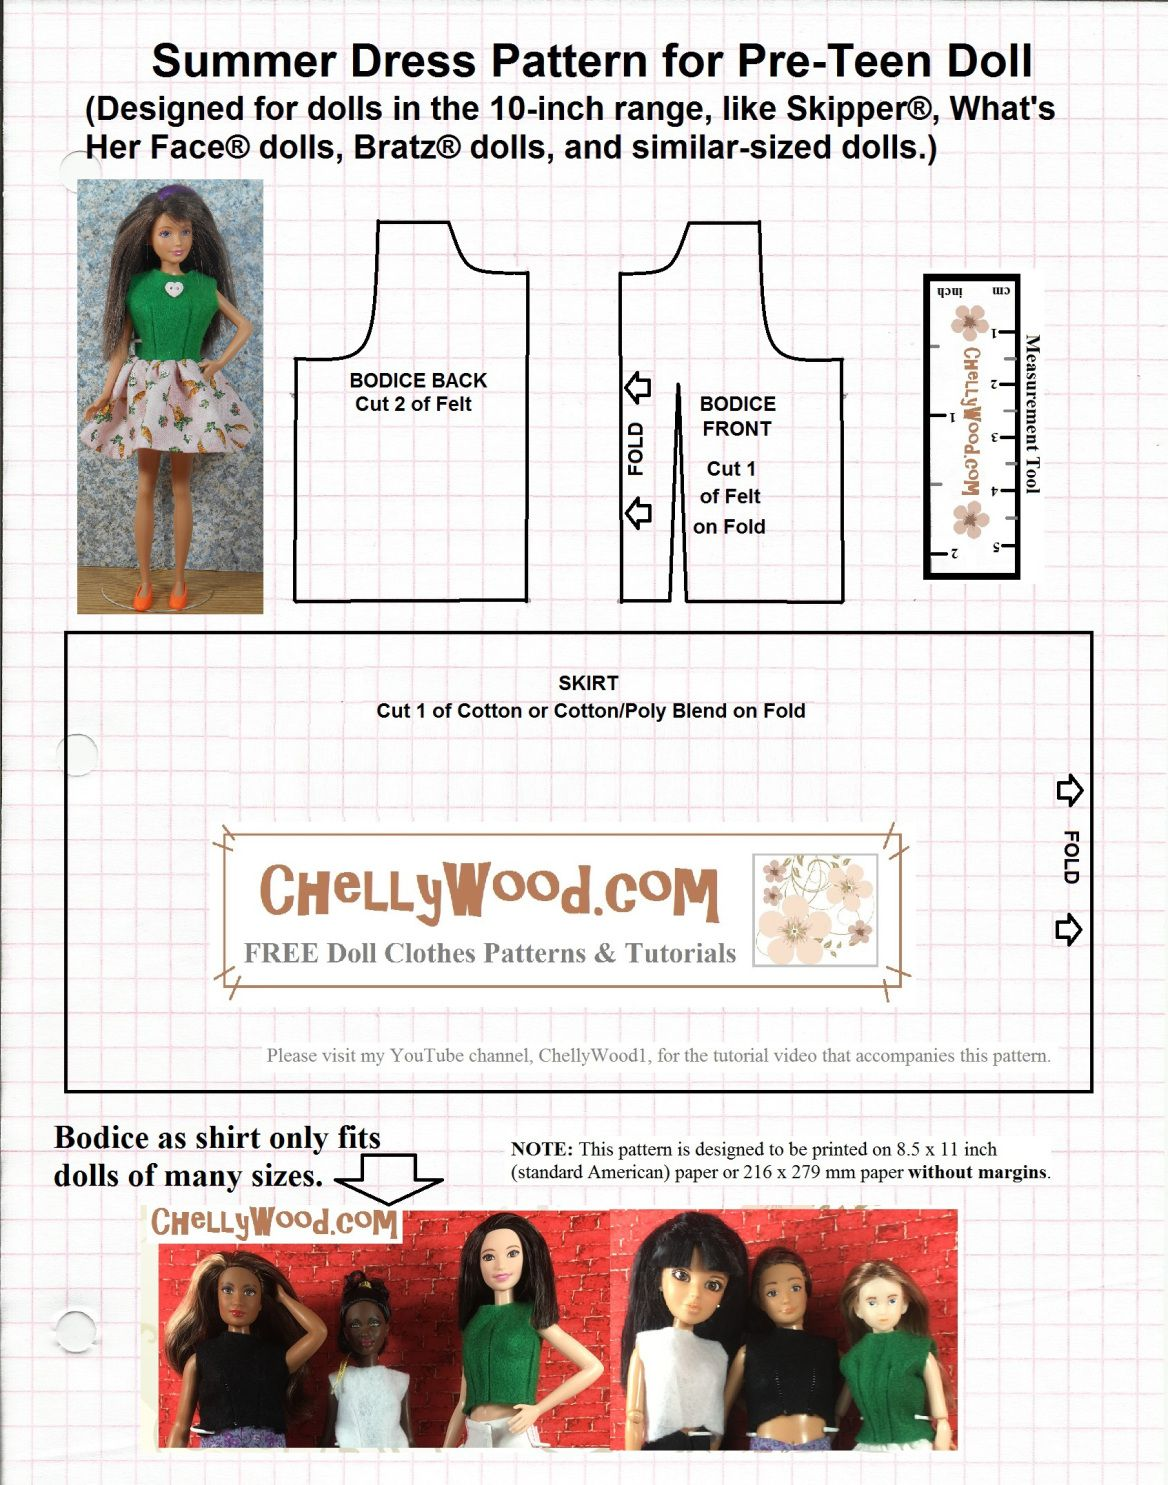 Free sewing patterns for fashion dolls - Image Shows An Easy To Sew Free Printable Sewing Pattern For Fashion Dolls Like